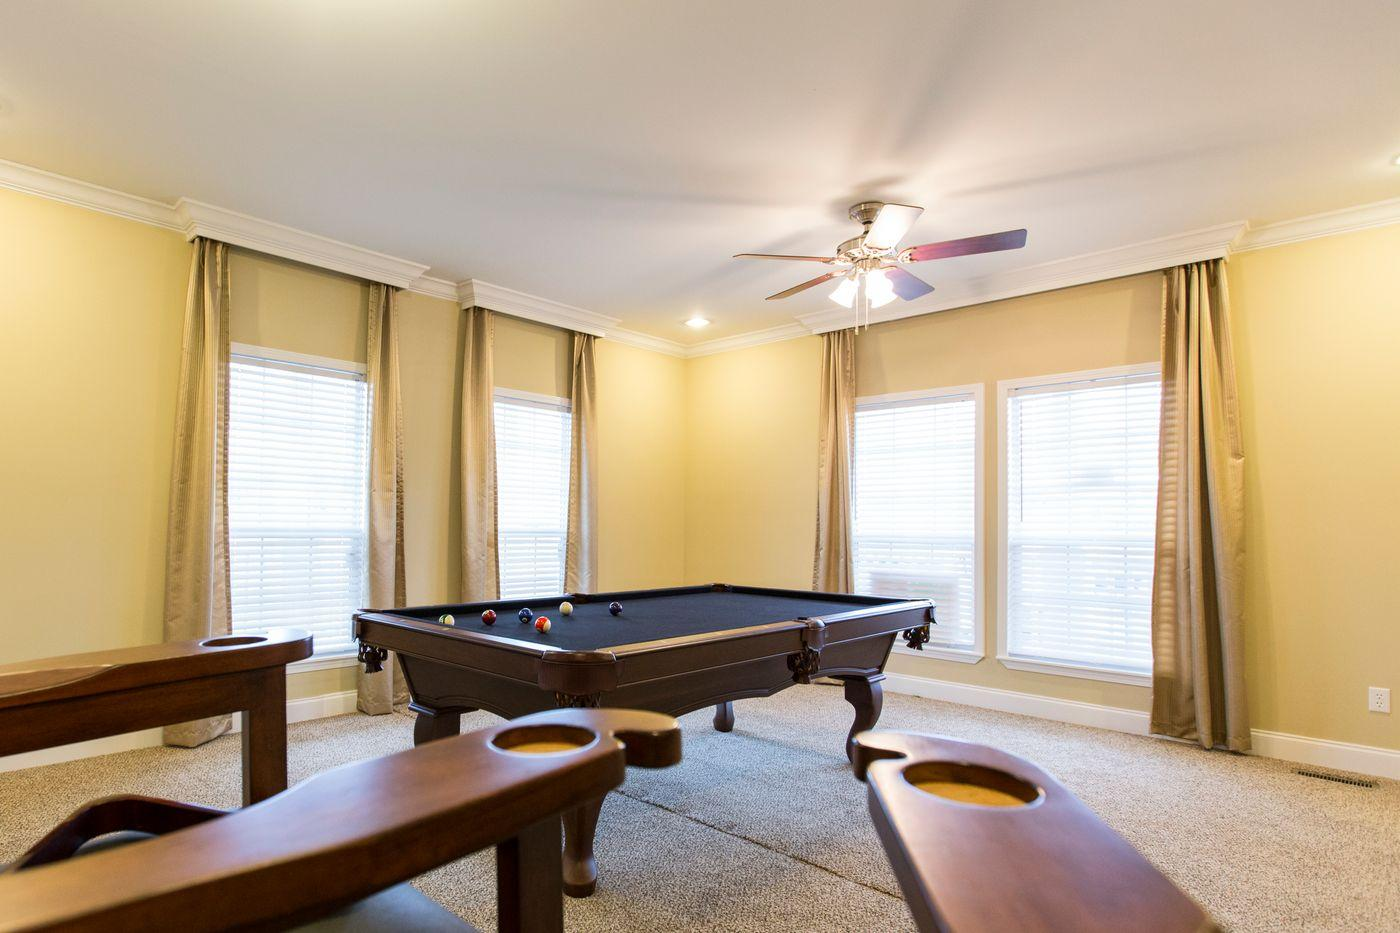 The Jefferson Pool Table